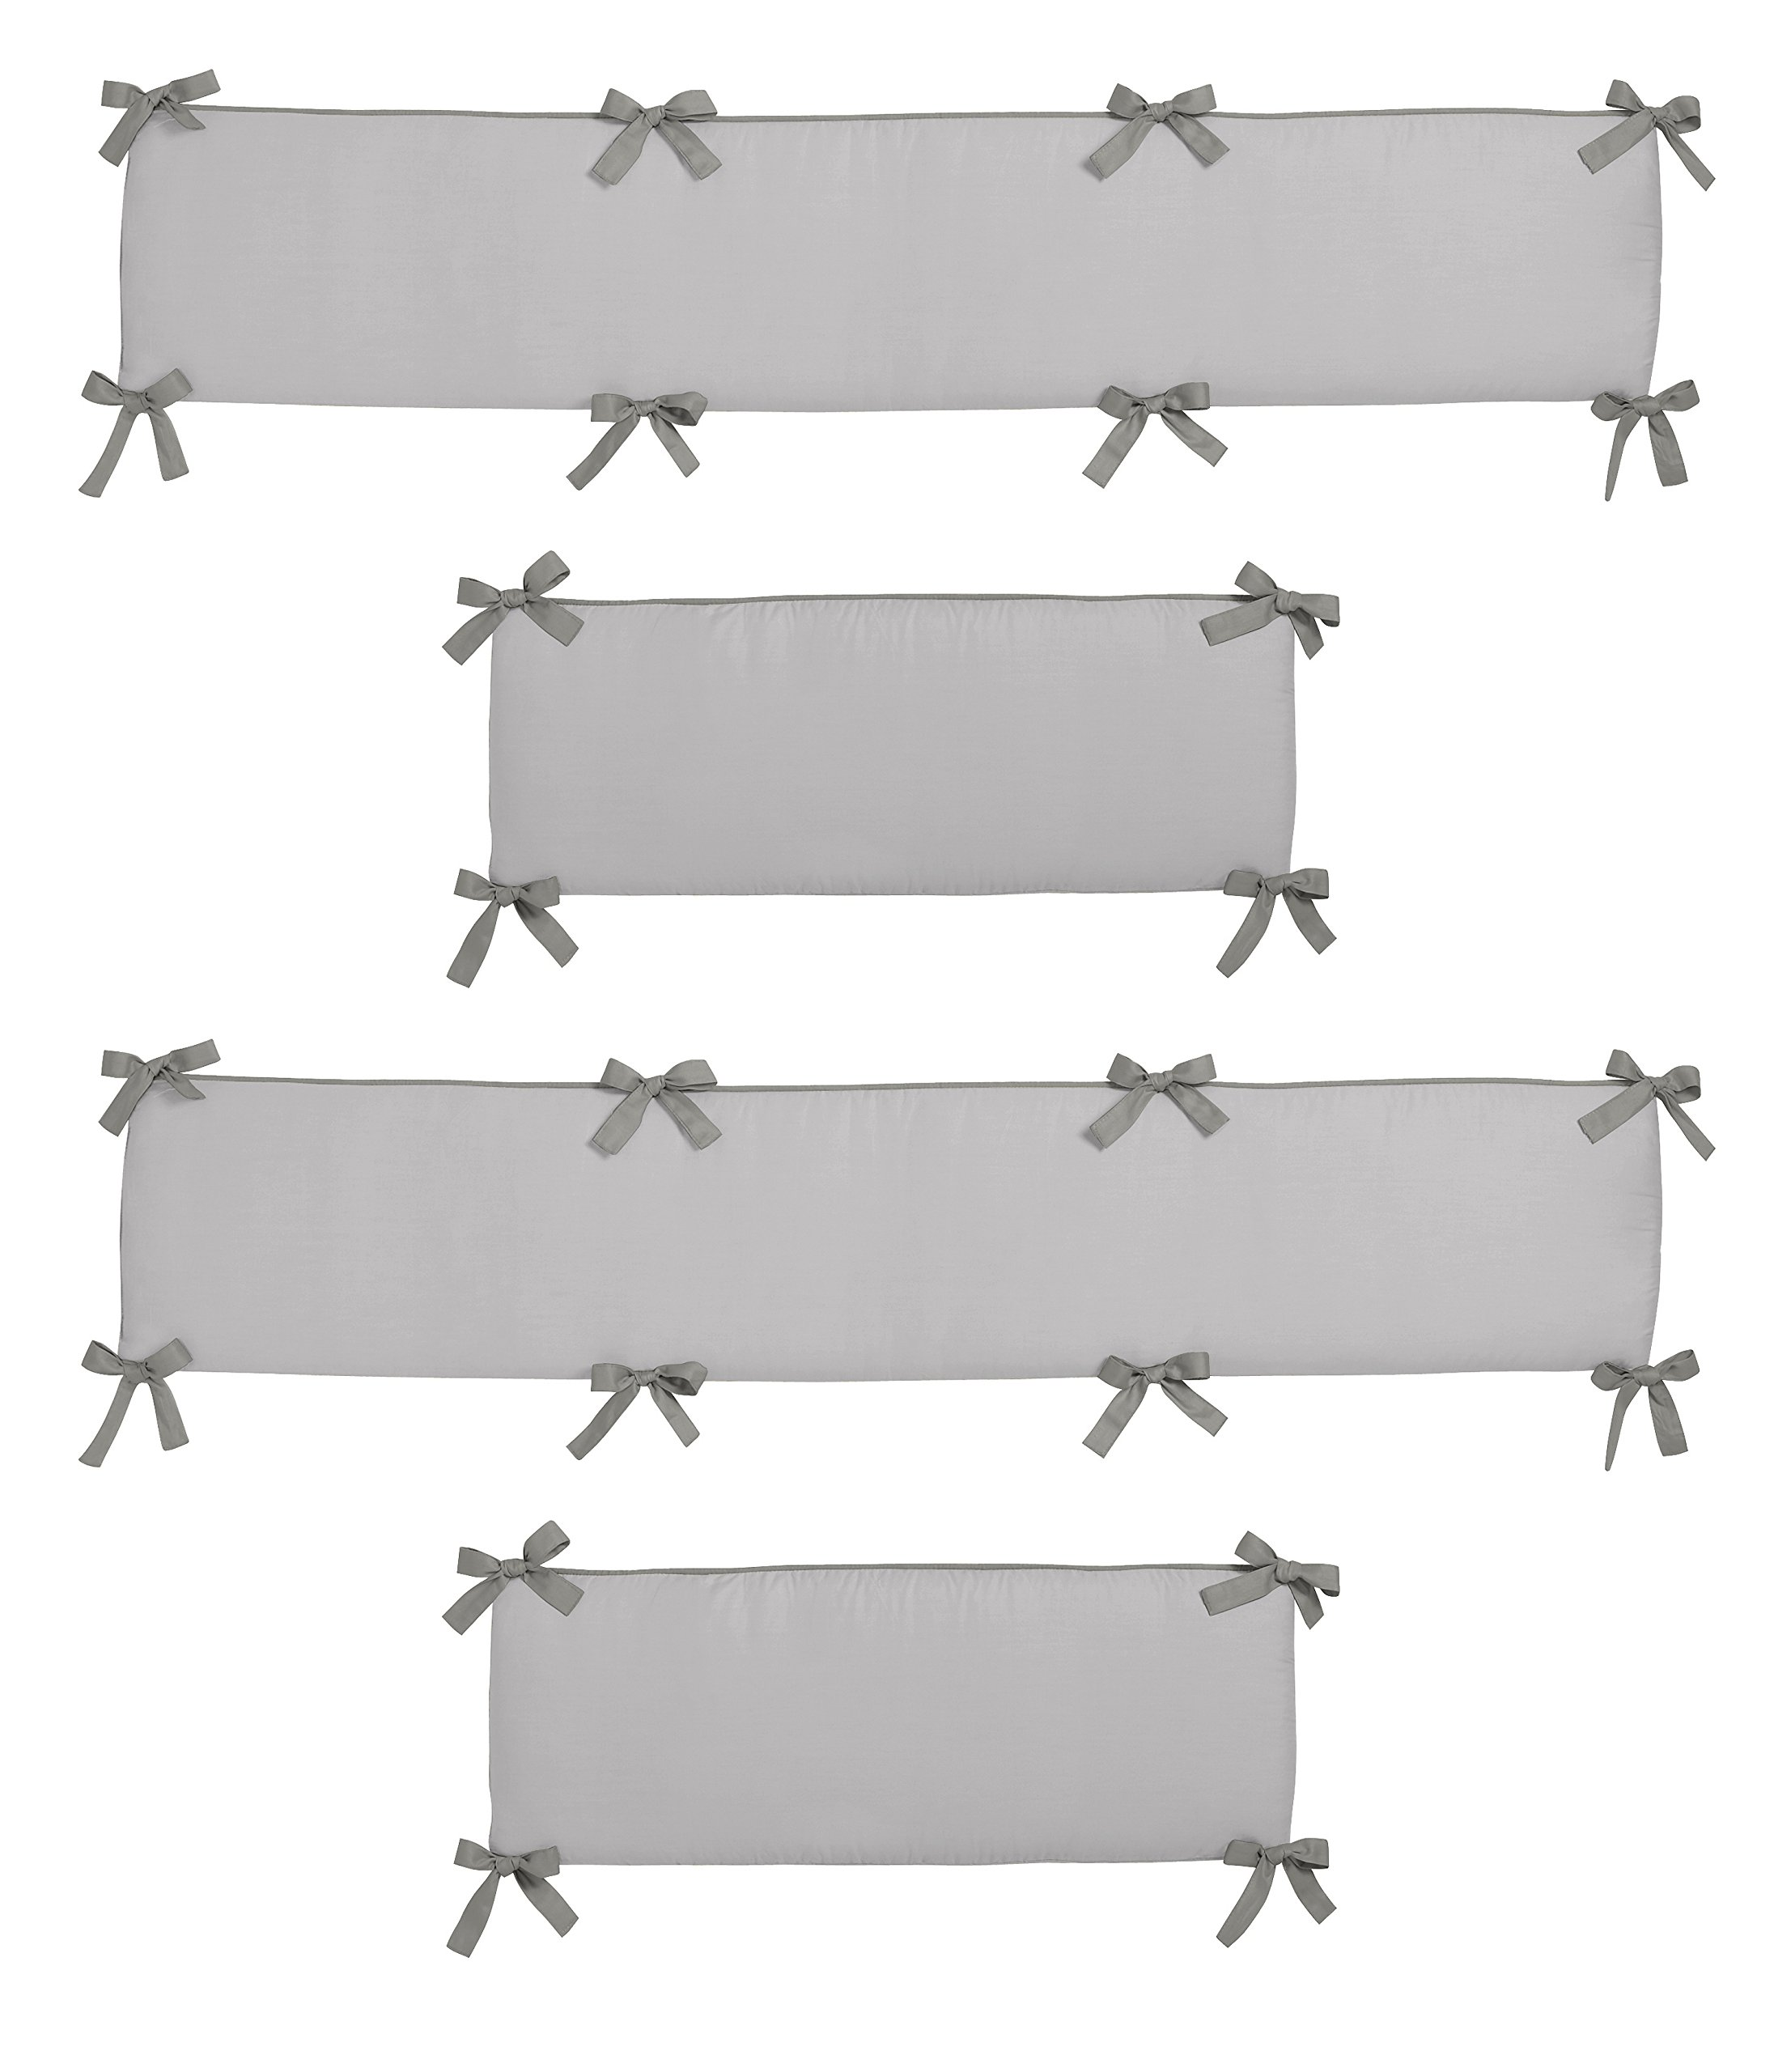 Sweet Jojo Designs Grey and White Wood Grain Baby Crib Bumper Pad for Woodsy Collection by by Sweet Jojo Designs (Image #2)